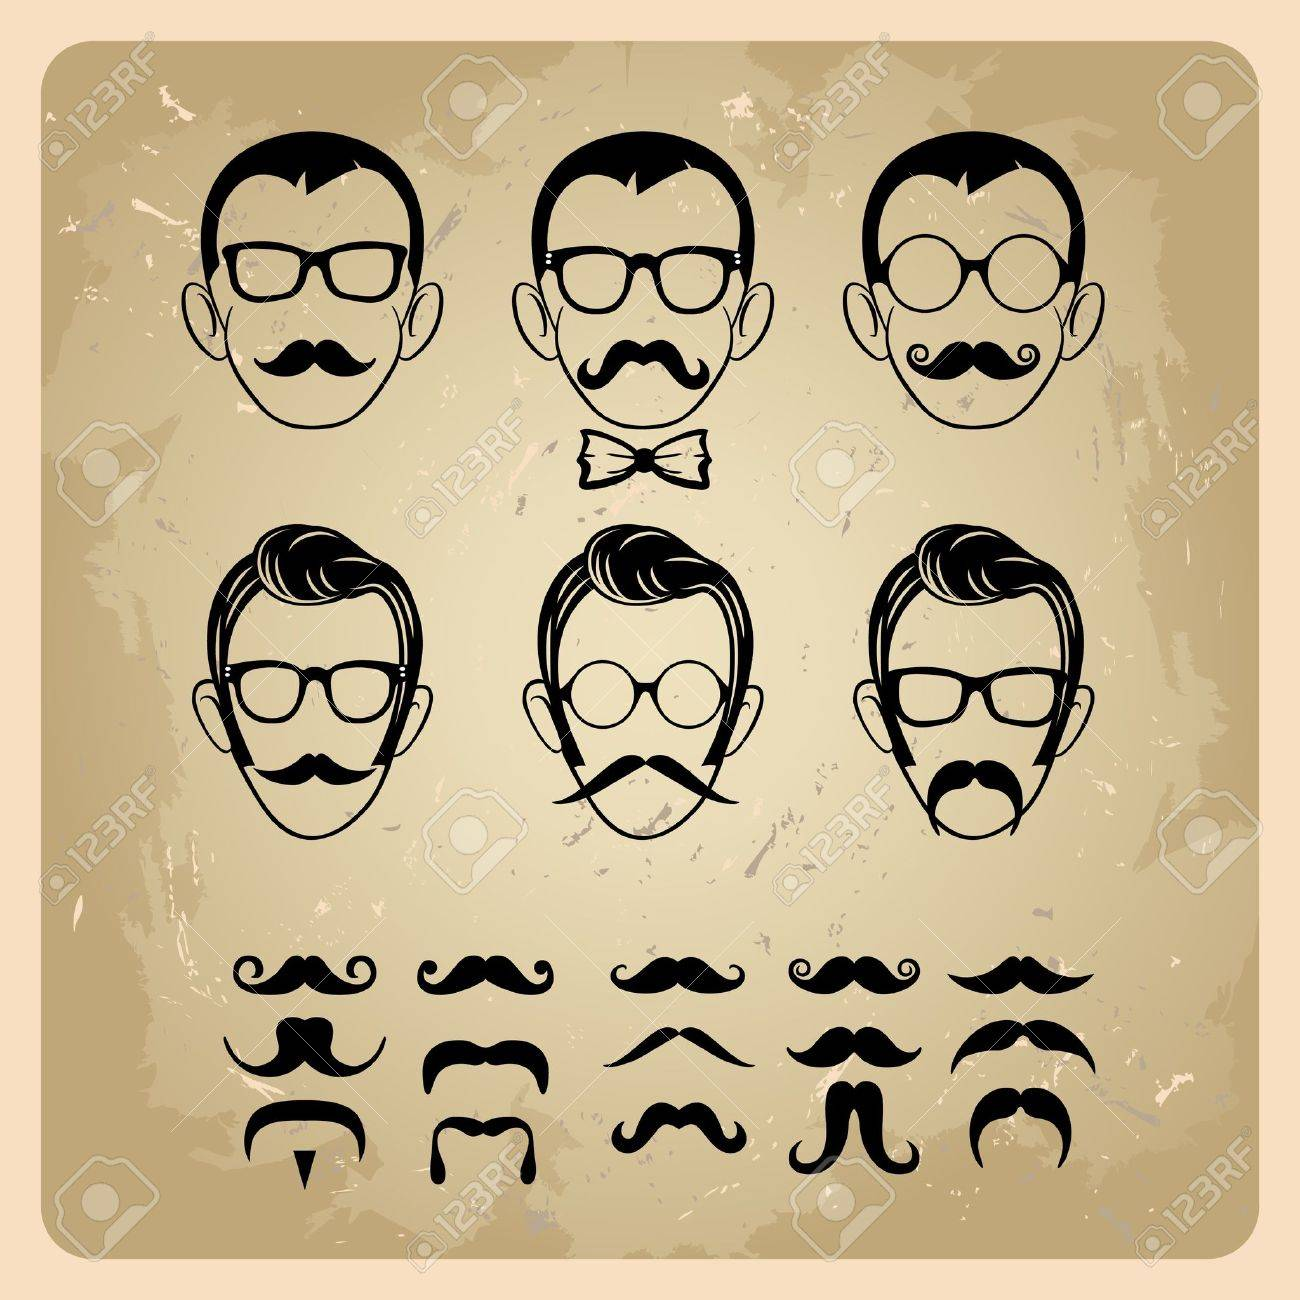 Faces with Mustaches, sunglasses,eyeglasses and a bow tie - vector illustration Stock Vector - 15227493